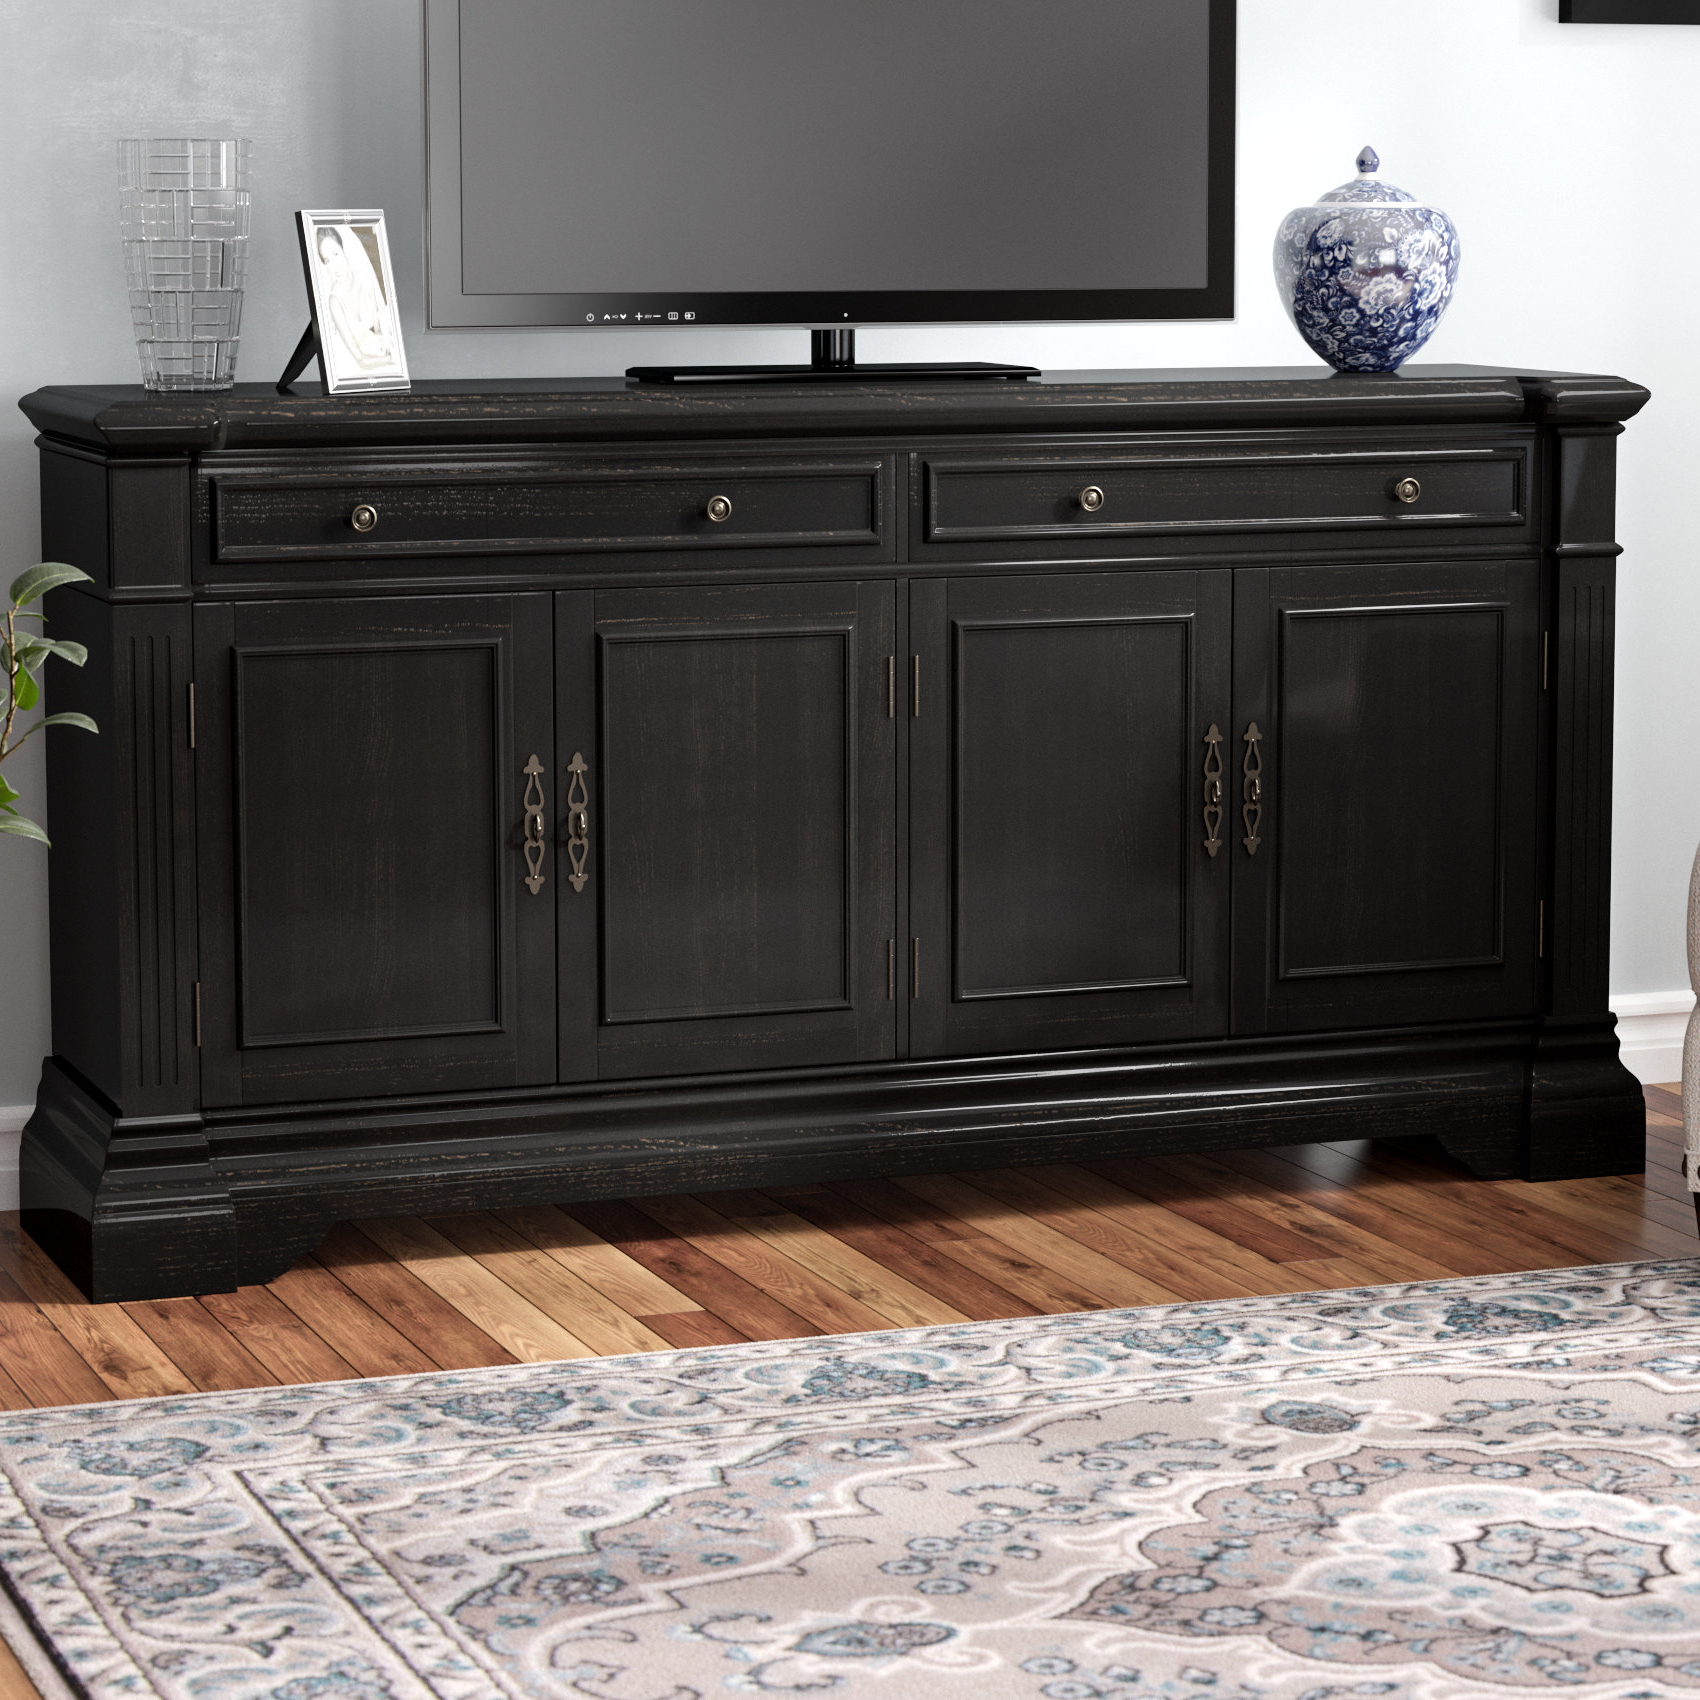 Tall Tv Stands You'll Love | Wayfair With Regard To Wyatt 68 Inch Tv Stands (View 17 of 20)